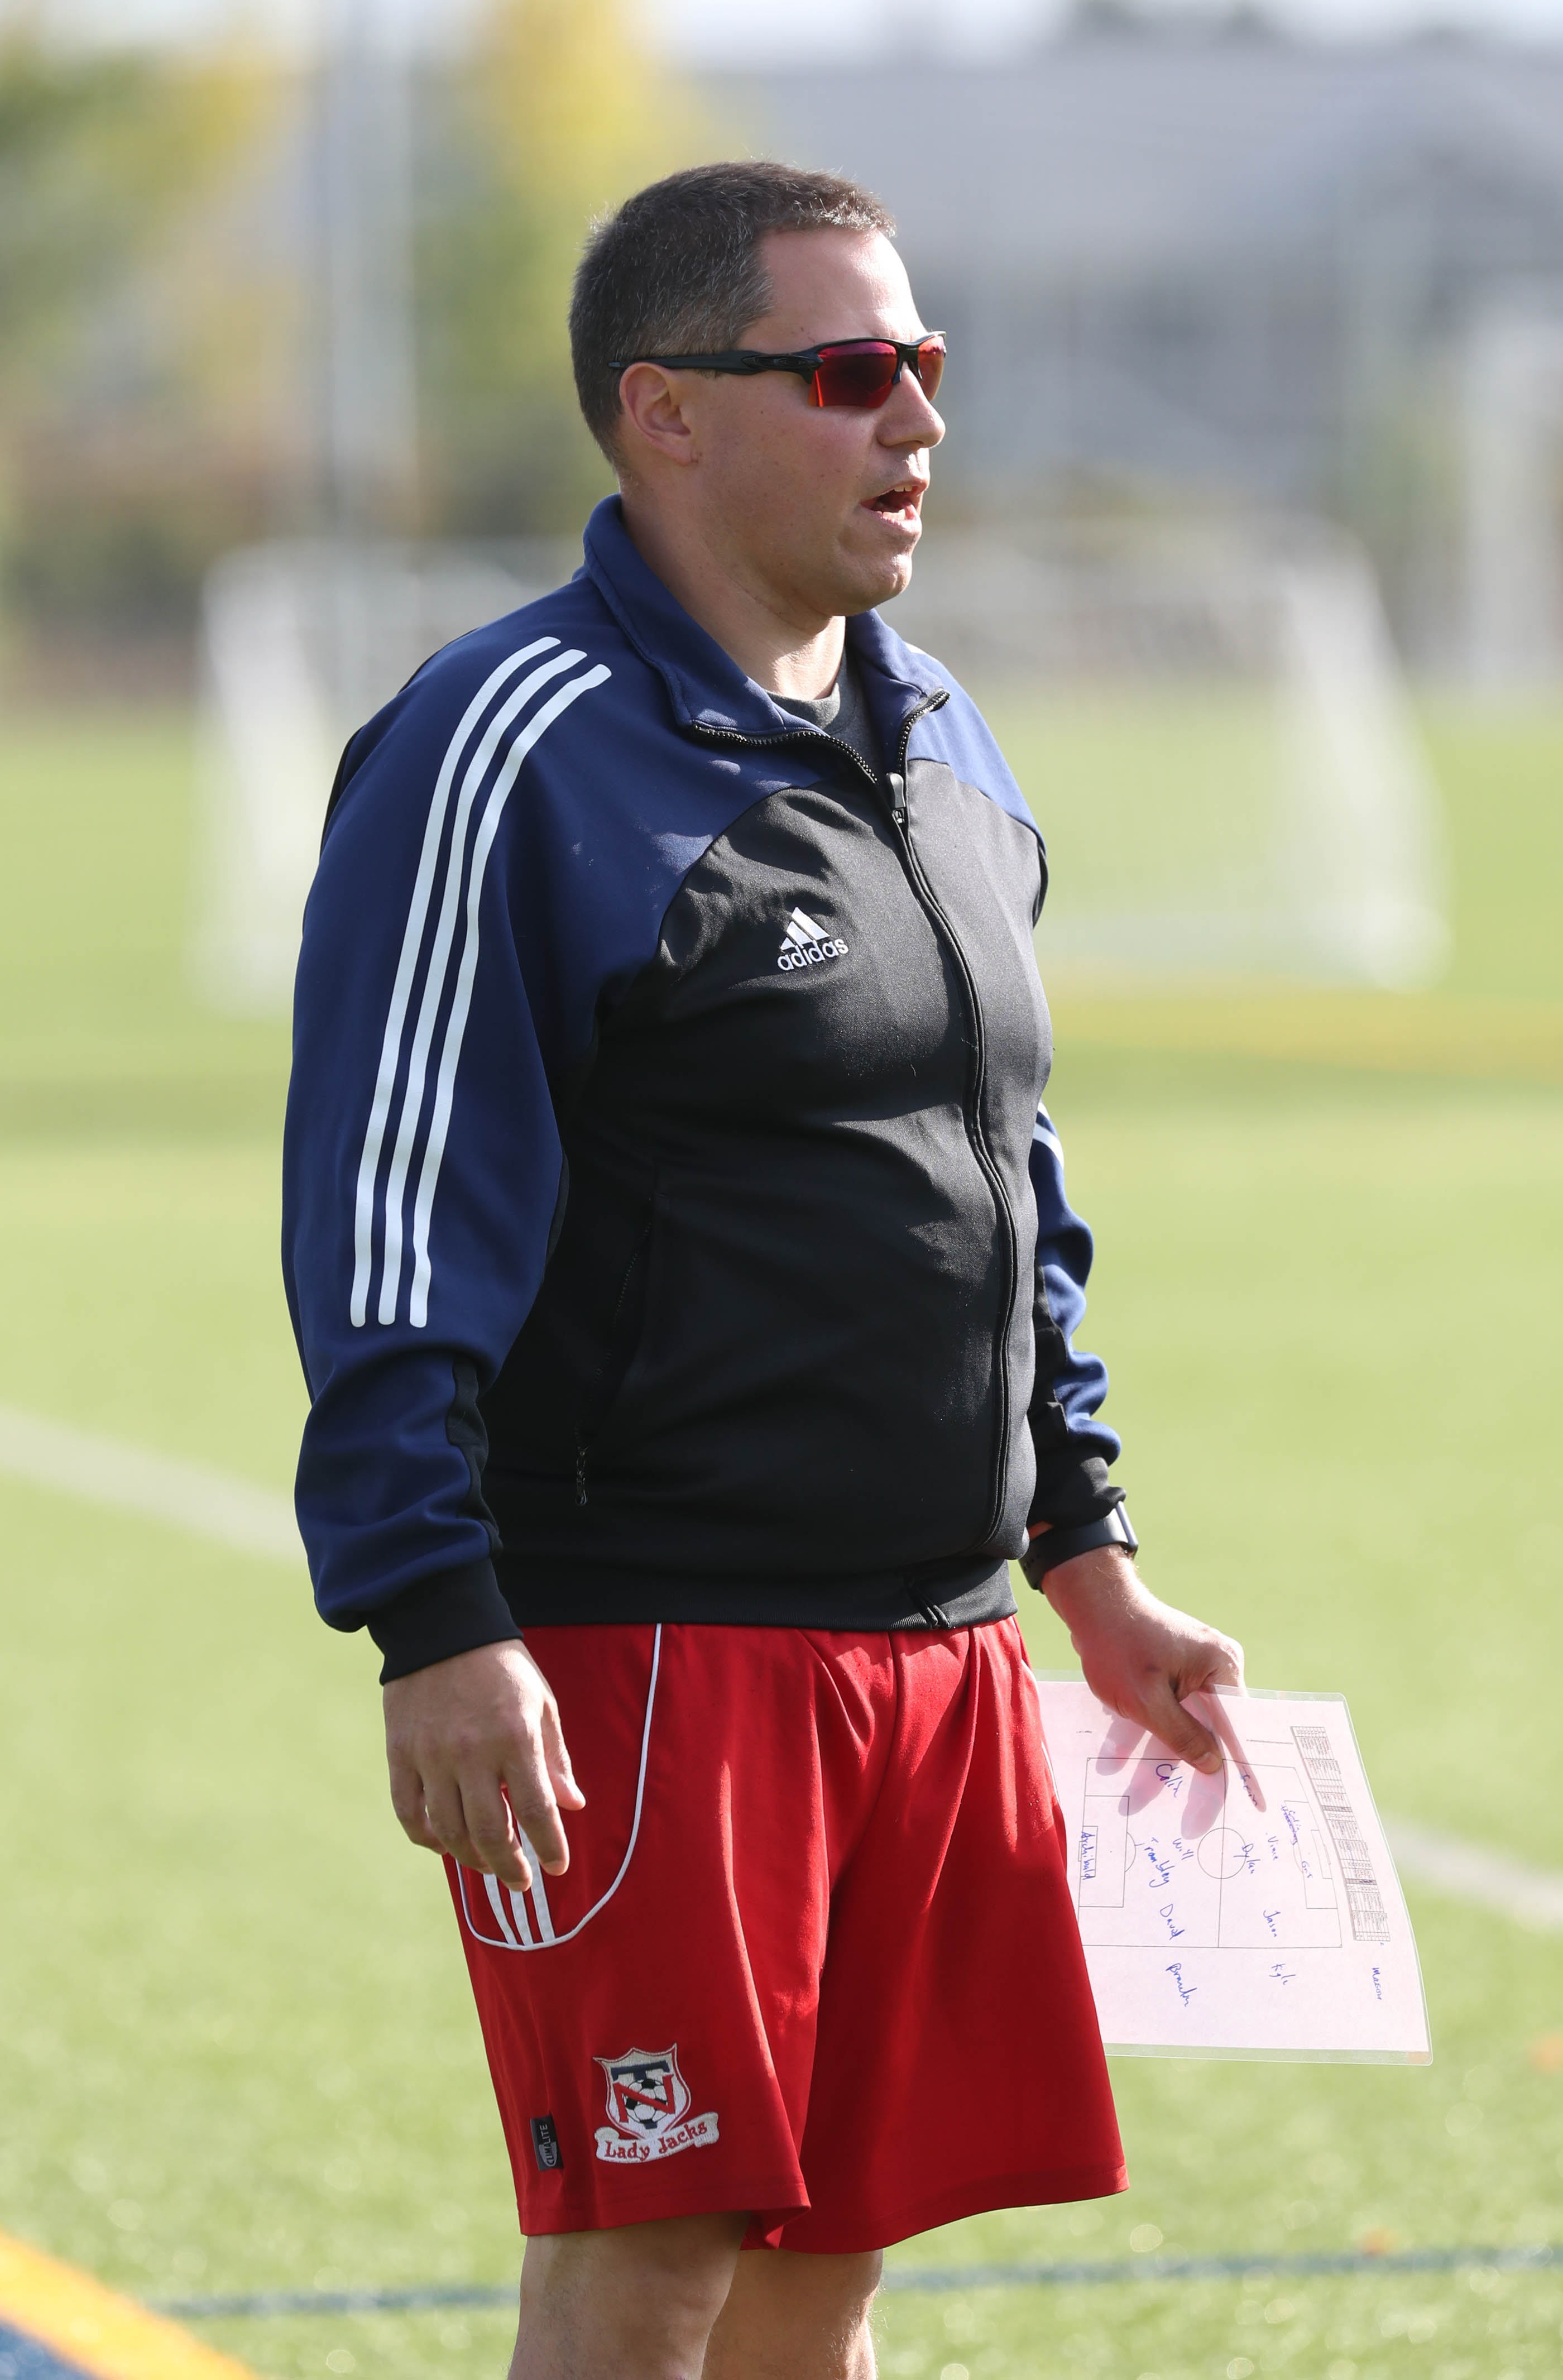 Steve Sabo looks to get the North Tonawanda boys soccer team on a path toward respectability. He has a strong coaching resume, having guided NT's girls soccer program to 185 wins over 17 seasons. (James P. McCoy/ Buffalo News)